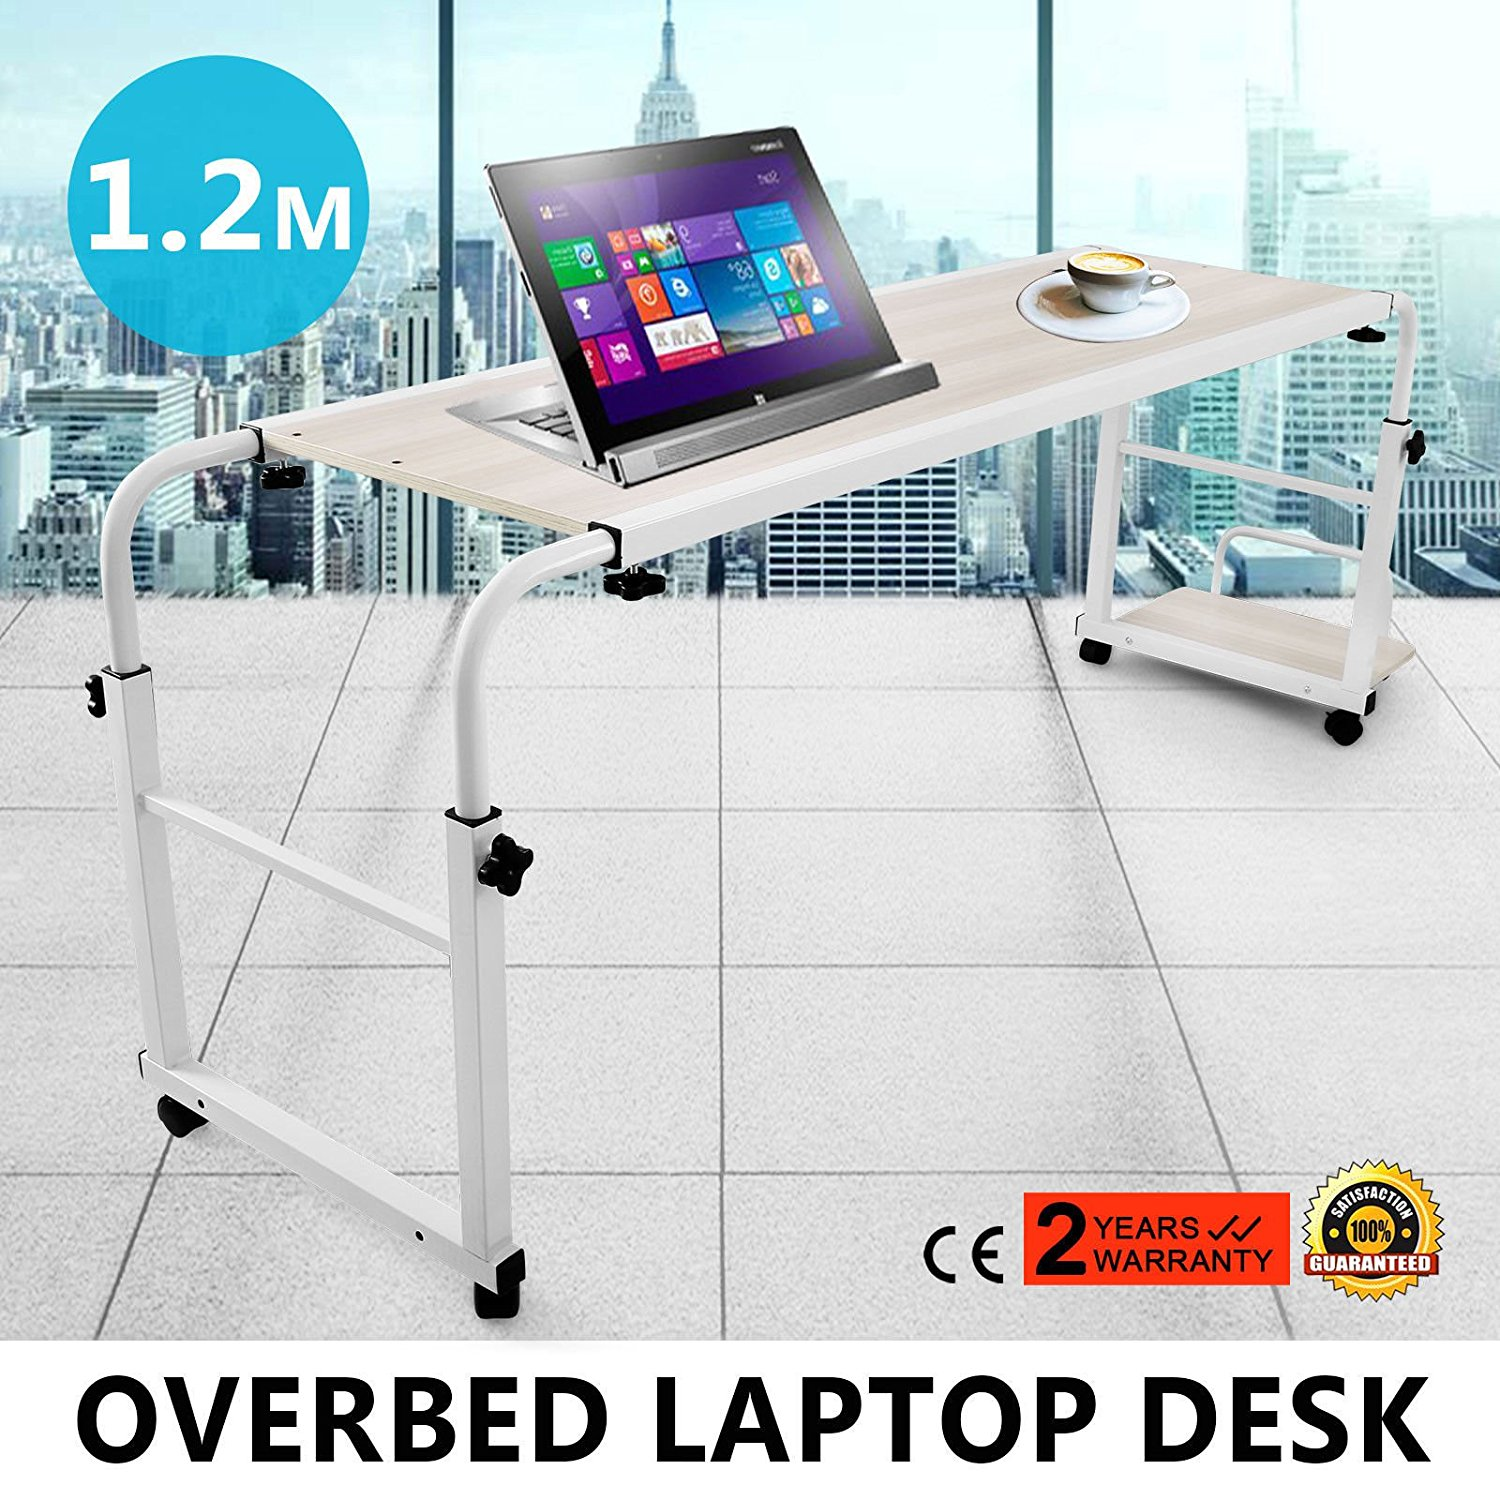 Generic NV_1008003912_QYUS483912 Tabletop Overbed g Lapto Table W/ Tilting Rolling Rolling Laptop W/ Til Food Tray Hospital PC ital PC Desk TV Tray Hospital PC